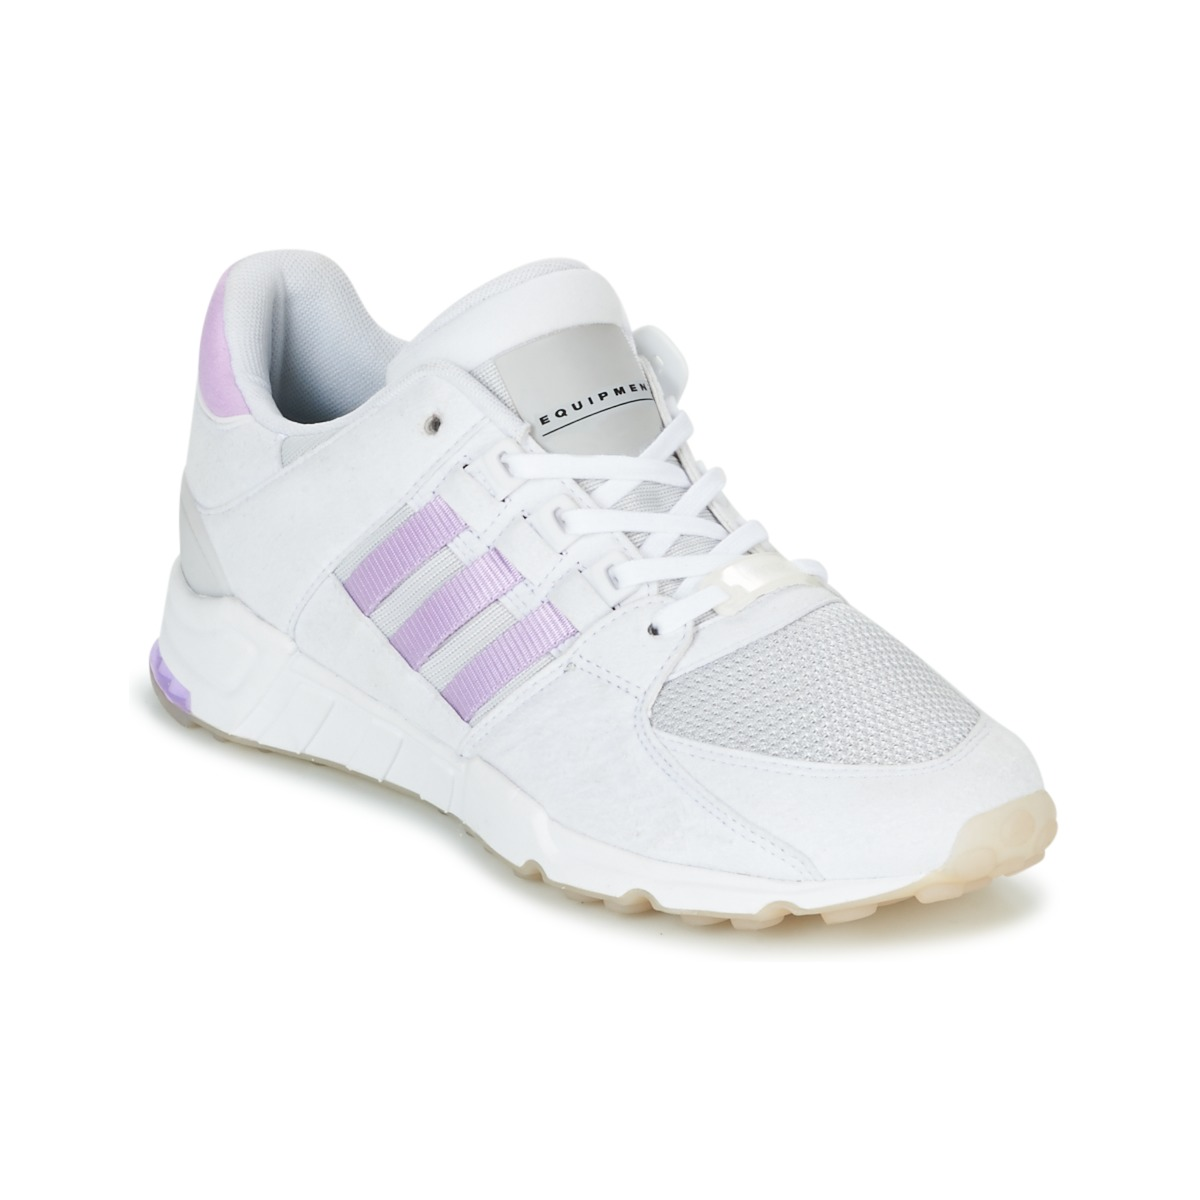 adidas originals eqt support rf w blanc pas cher baskets femme spartoo ventes pas. Black Bedroom Furniture Sets. Home Design Ideas